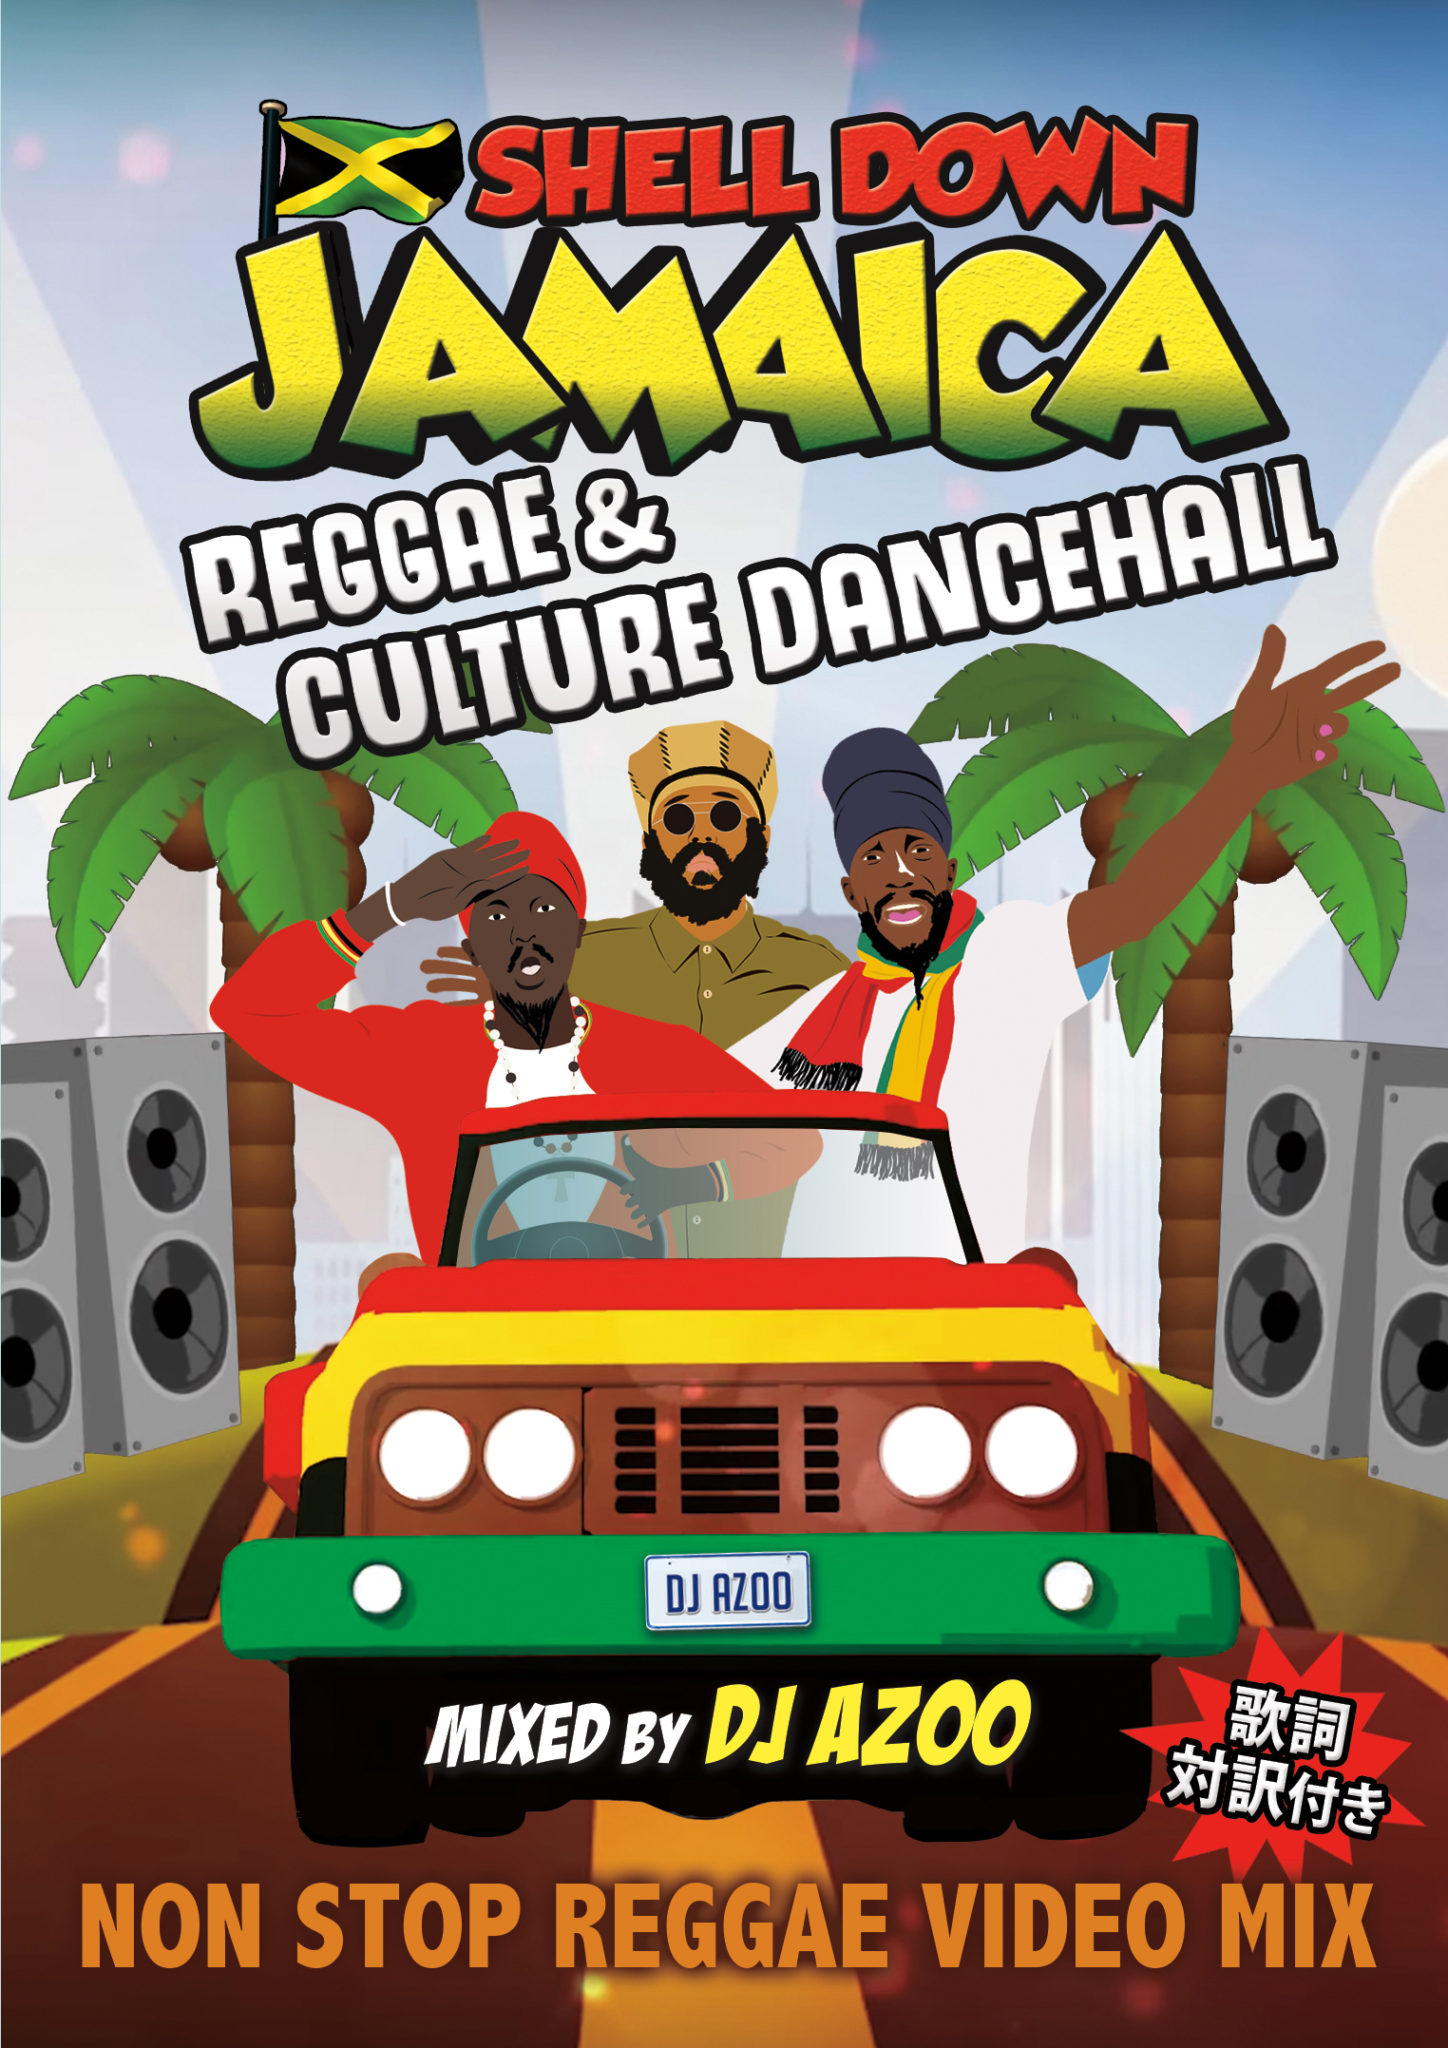 SHELL DOWN JAMAICA vol.5 -Reggae & Culture Dancehall-